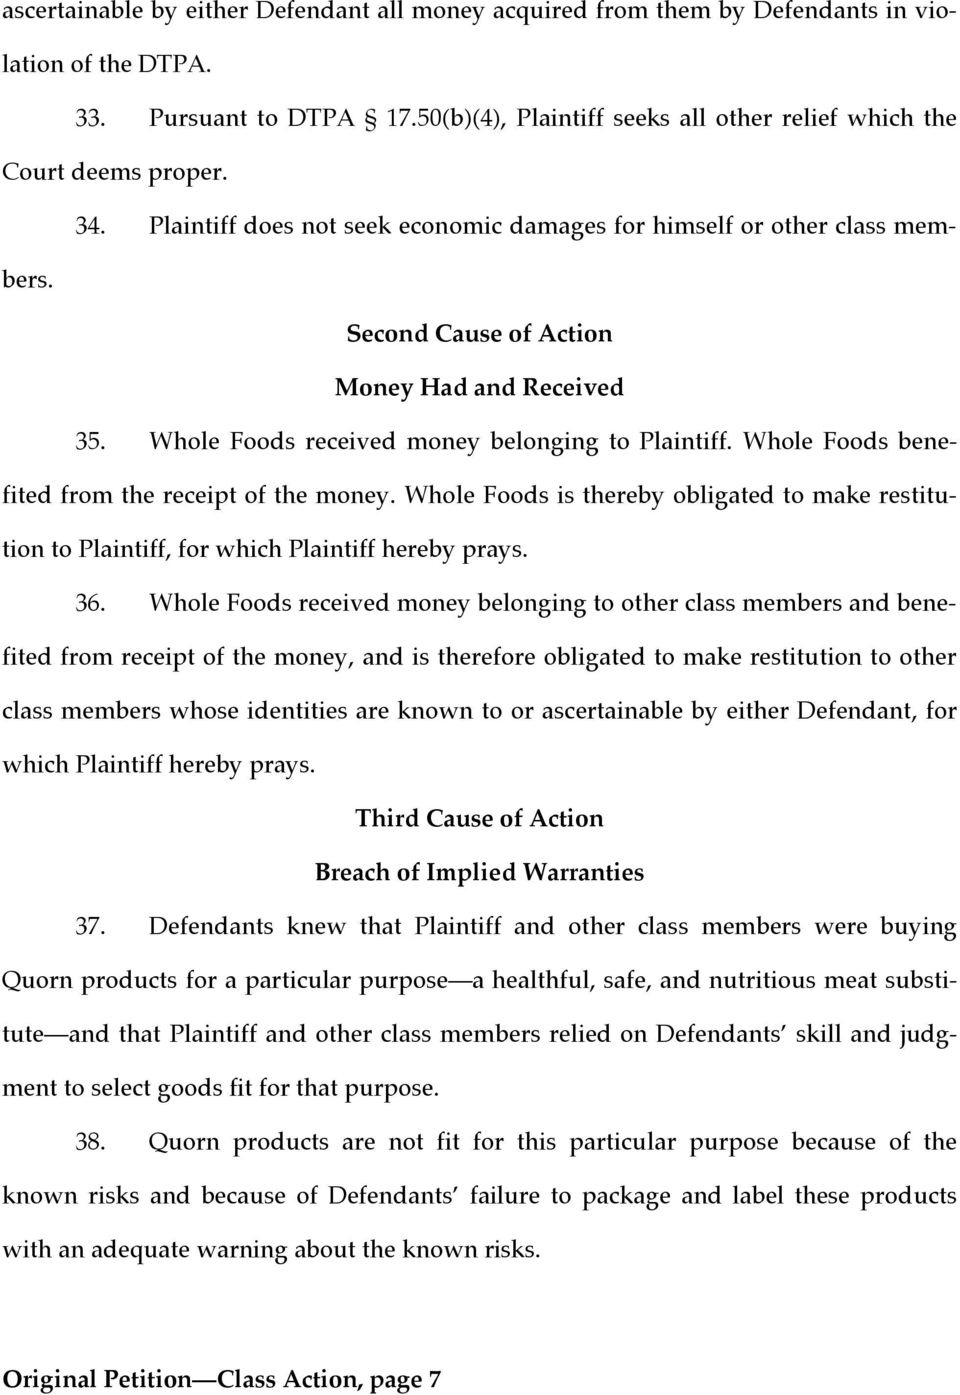 Whole Foods benefited from the receipt of the money. Whole Foods is thereby obligated to make restitution to Plaintiff, for which Plaintiff hereby prays. 36.